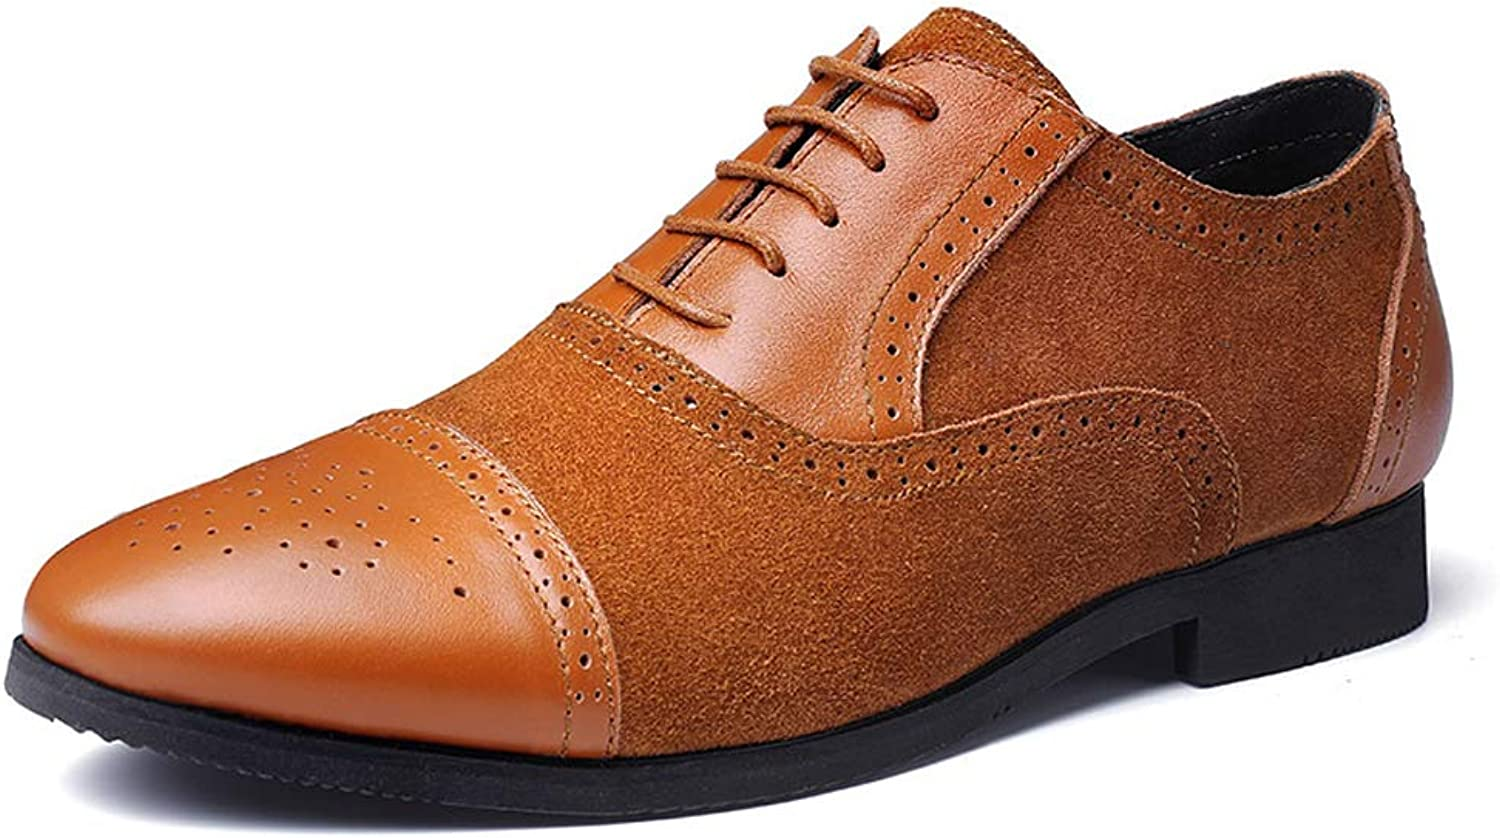 Mens Suede shoes Leather Lace Up Business Fashion Brogues Casual Tie Pointed Formal Dress Brogues